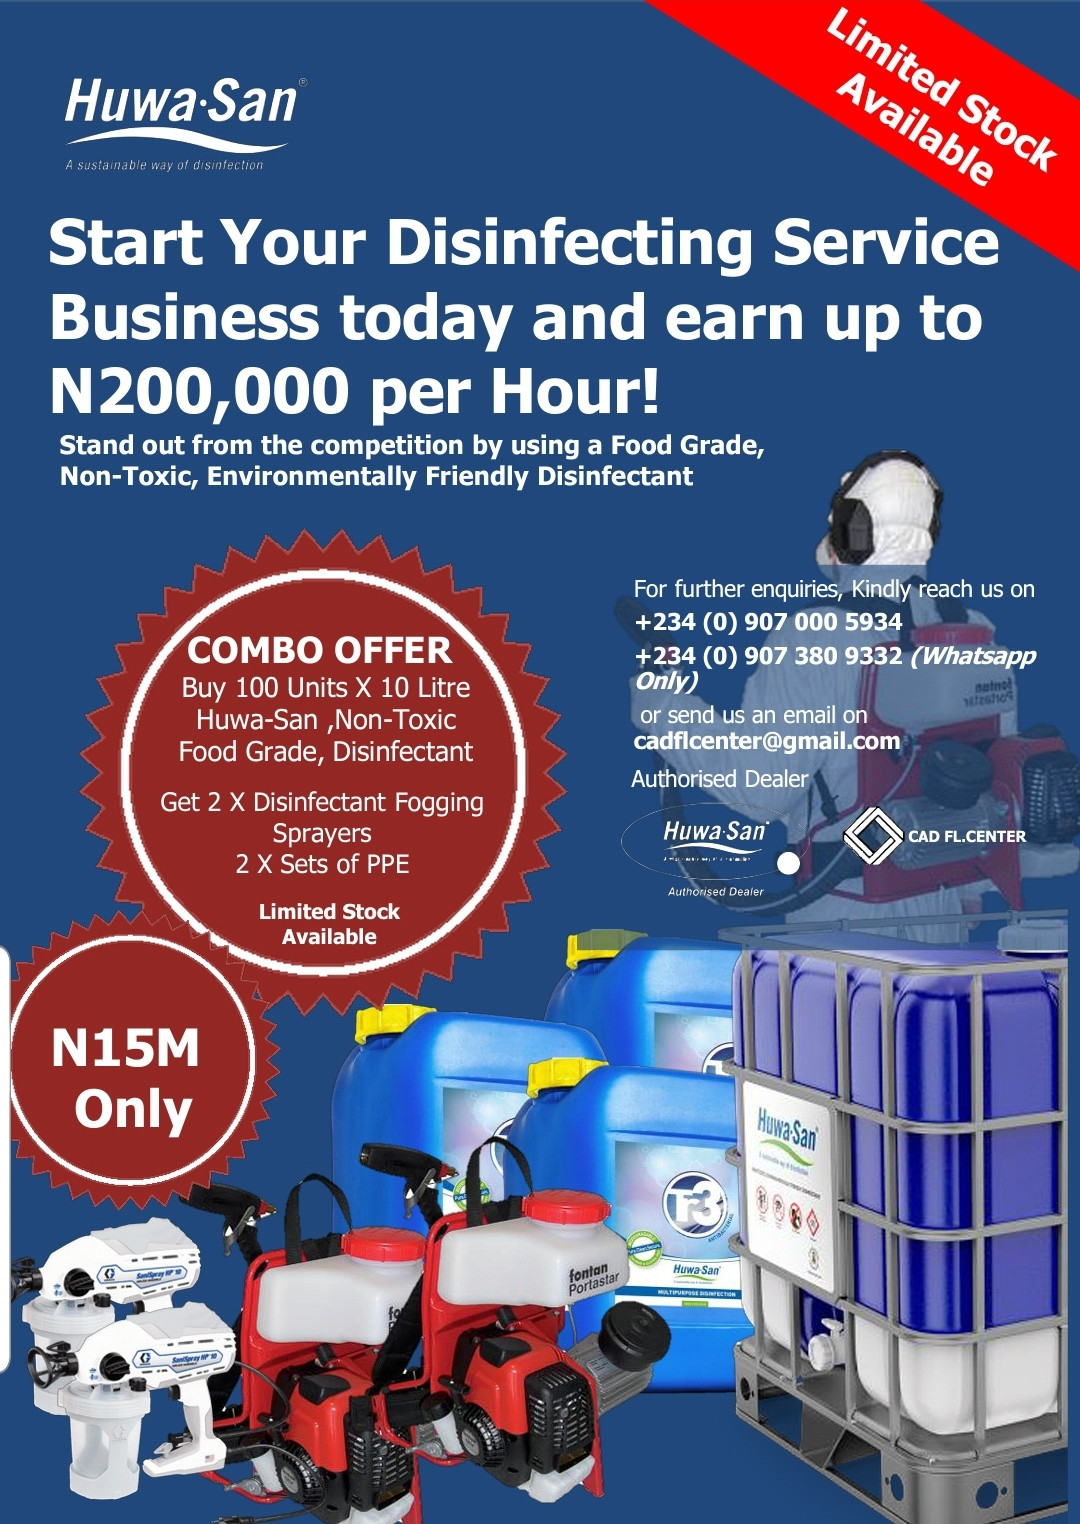 Start Your Disinfecting Service Business today and earn up to N200,000 per hour!